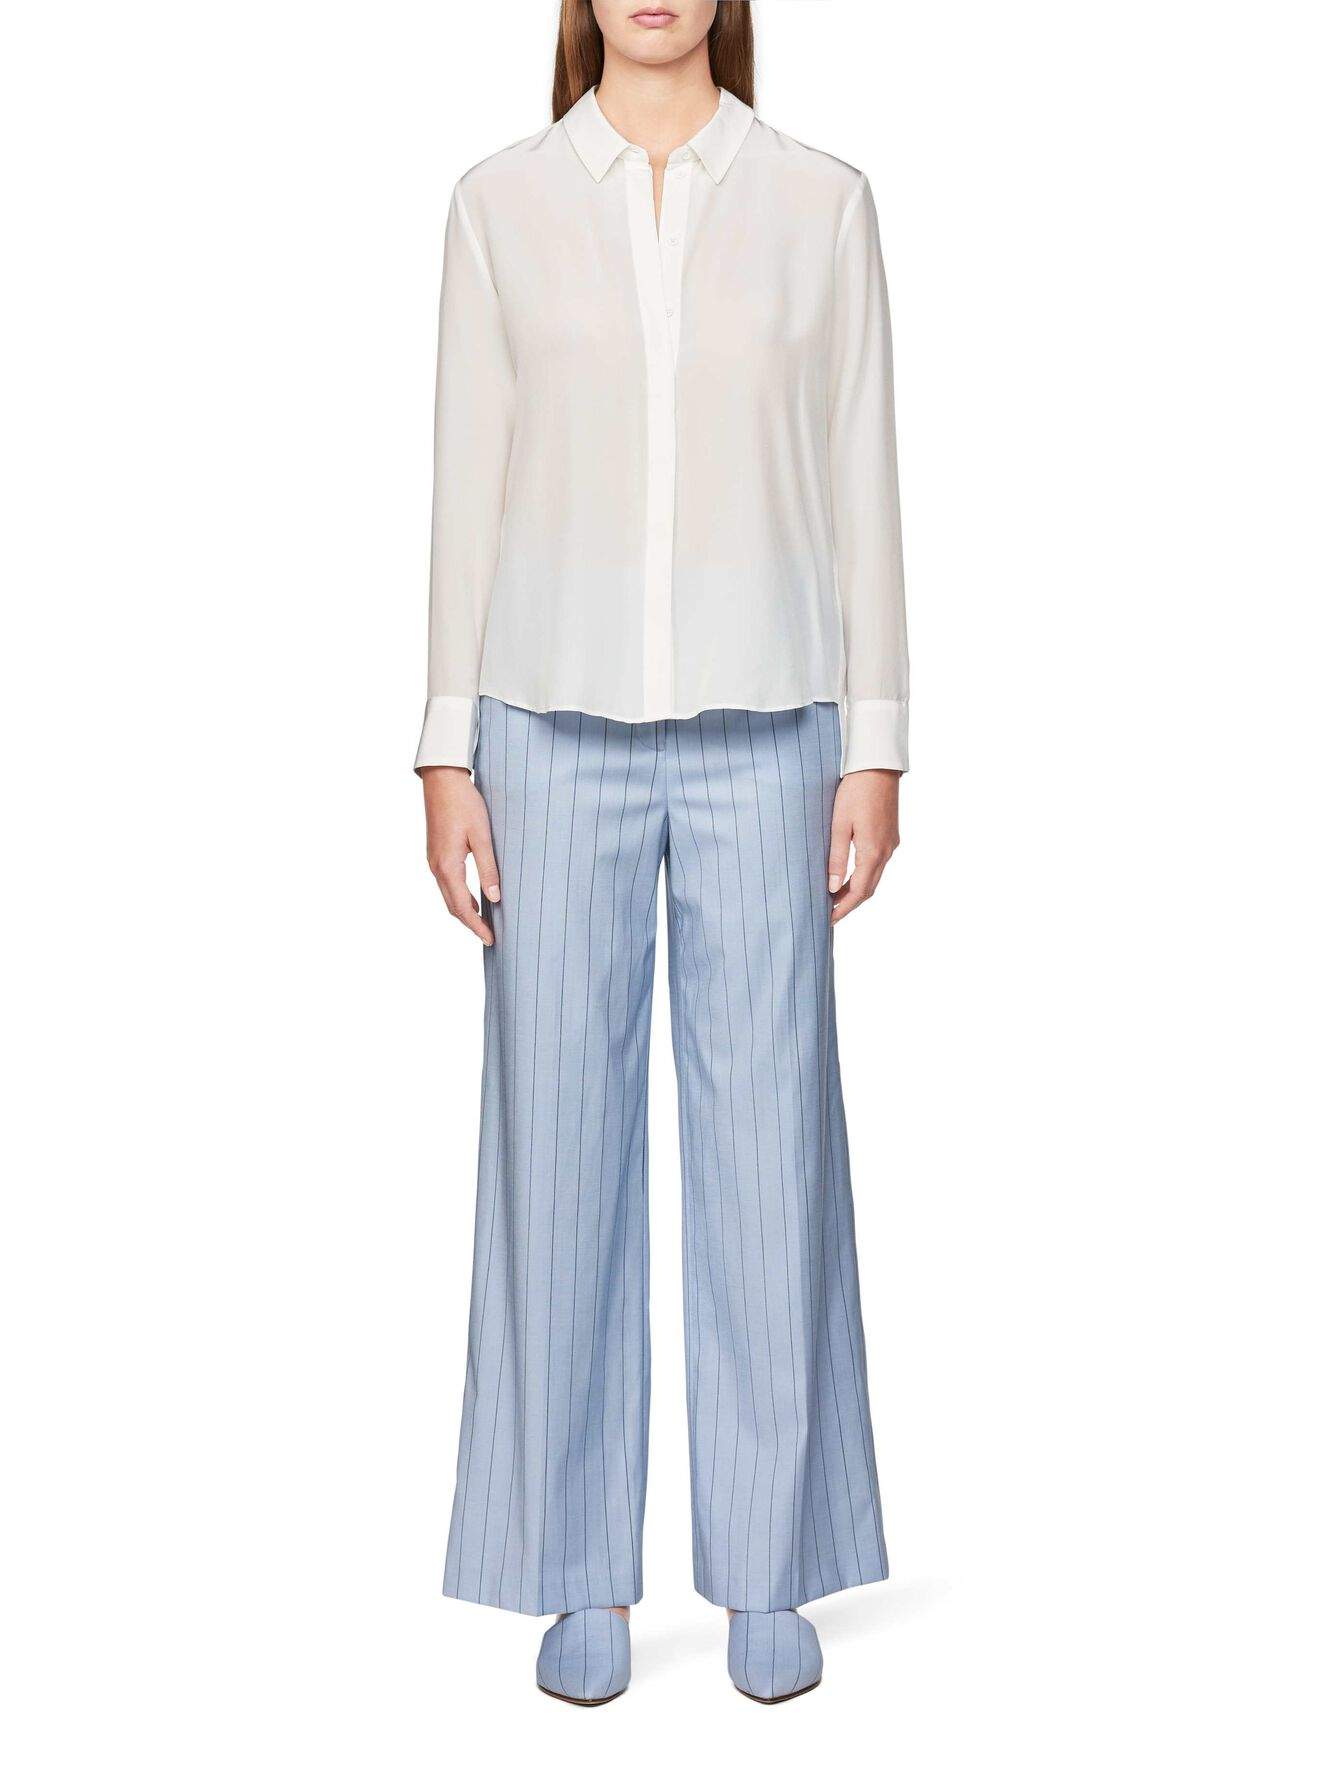 Silwa 2 Bluse in Star White from Tiger of Sweden